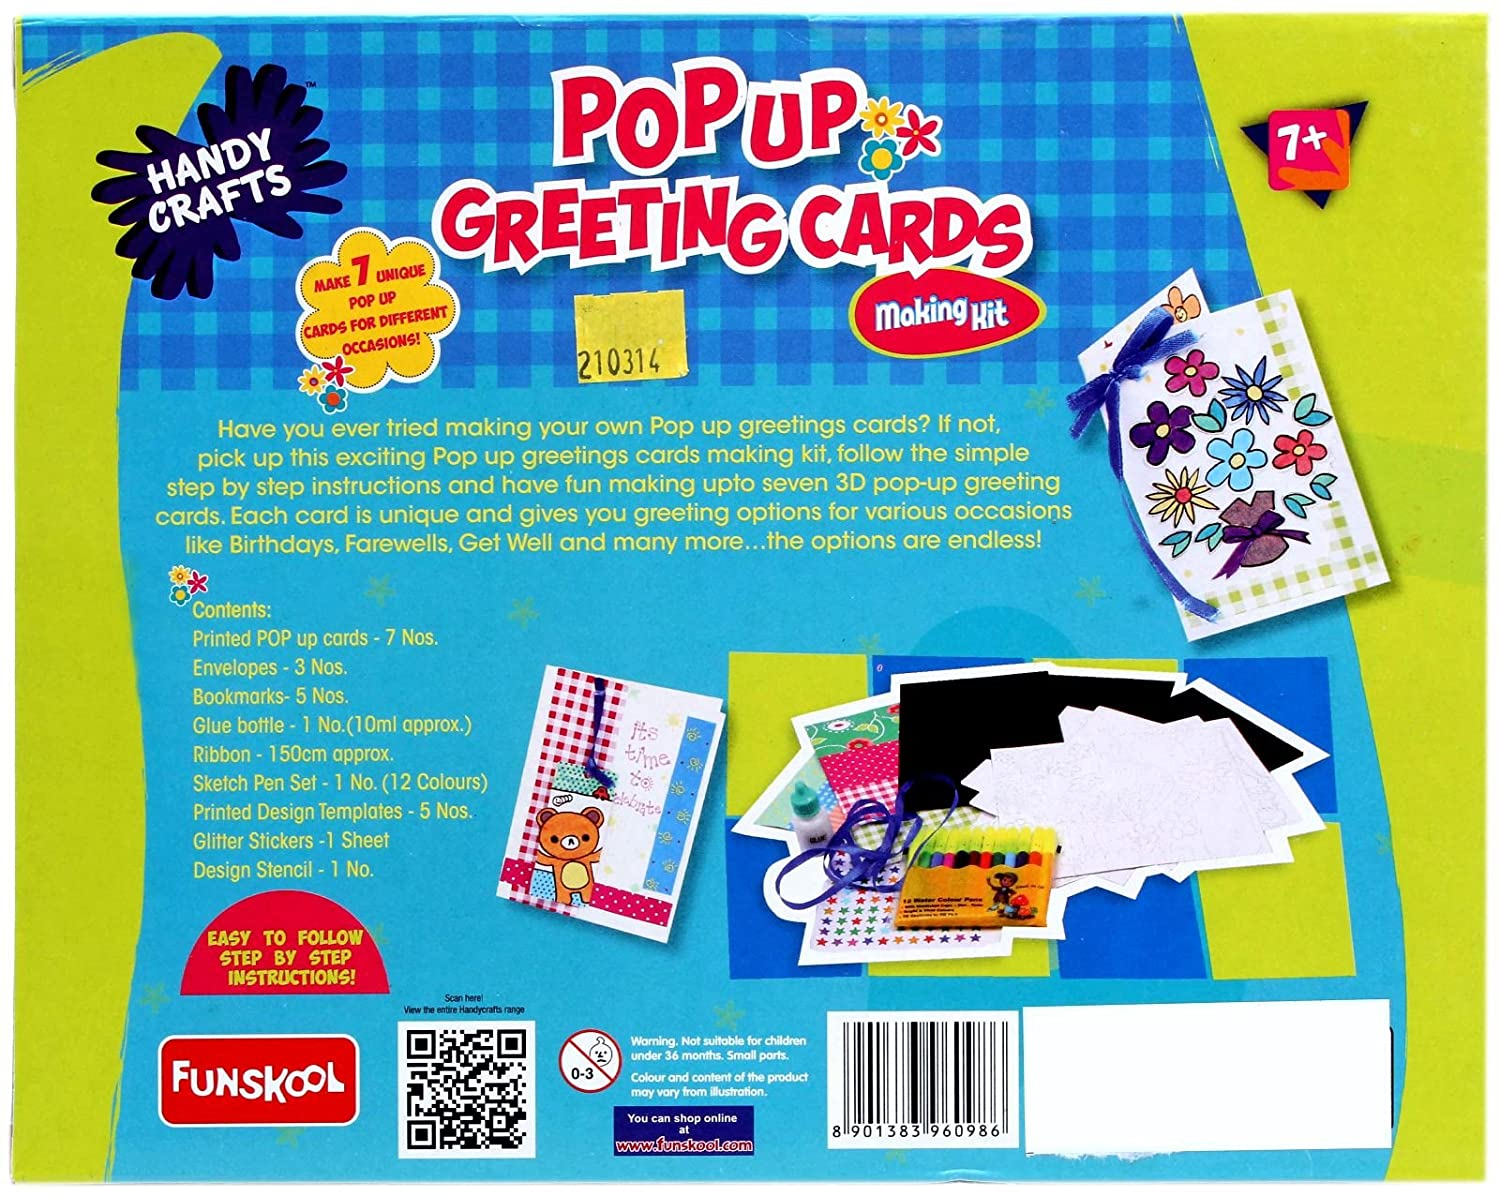 Funskool handy crafts pop up greeting cards multi color amazon funskool handy crafts pop up greeting cards multi color amazon toys games kristyandbryce Images